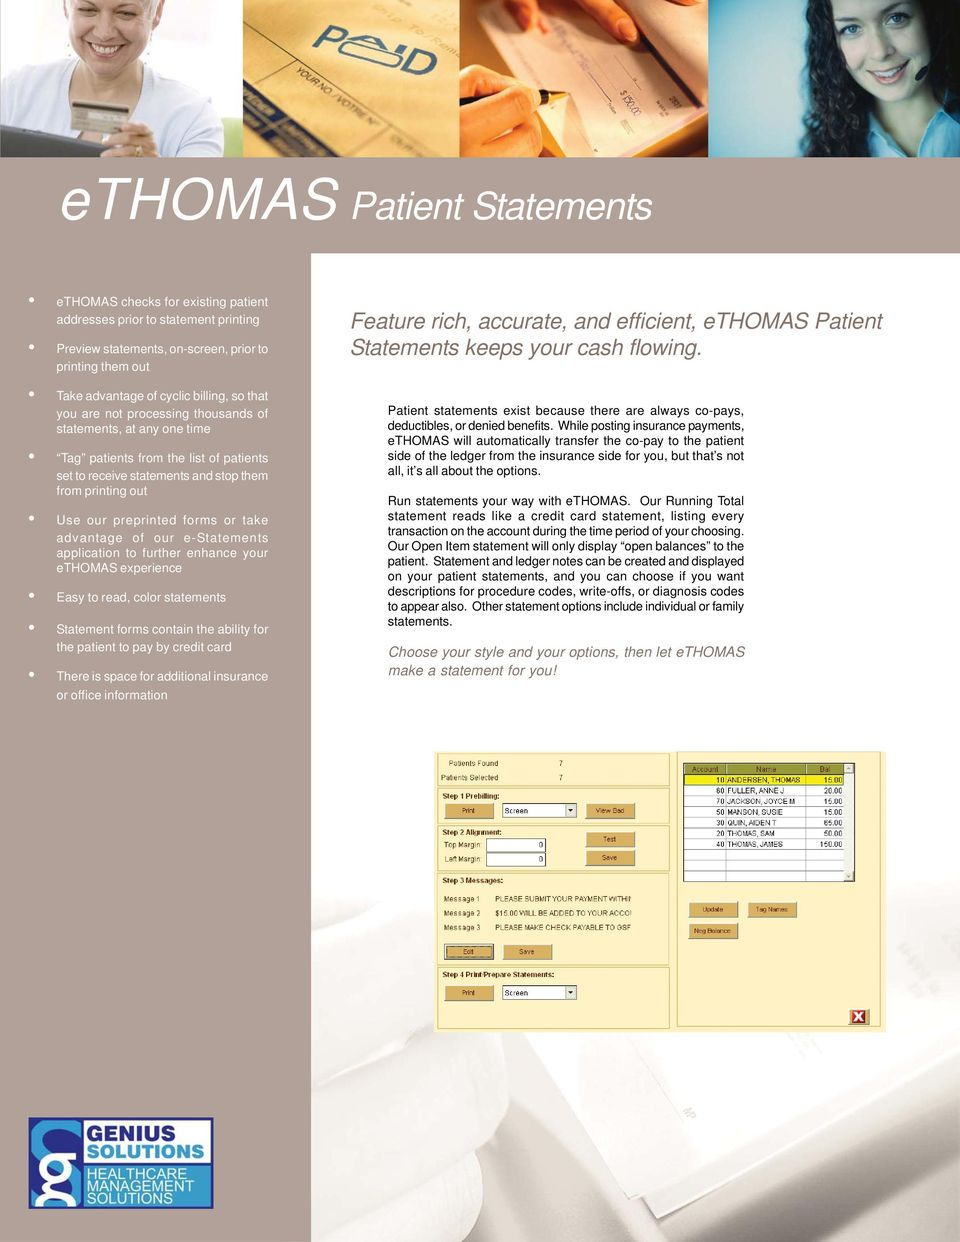 advantage of our e-statements application to further enhance your ethomas experience Easy to read, color statements Statement forms contain the ability for the patient to pay by credit card There is